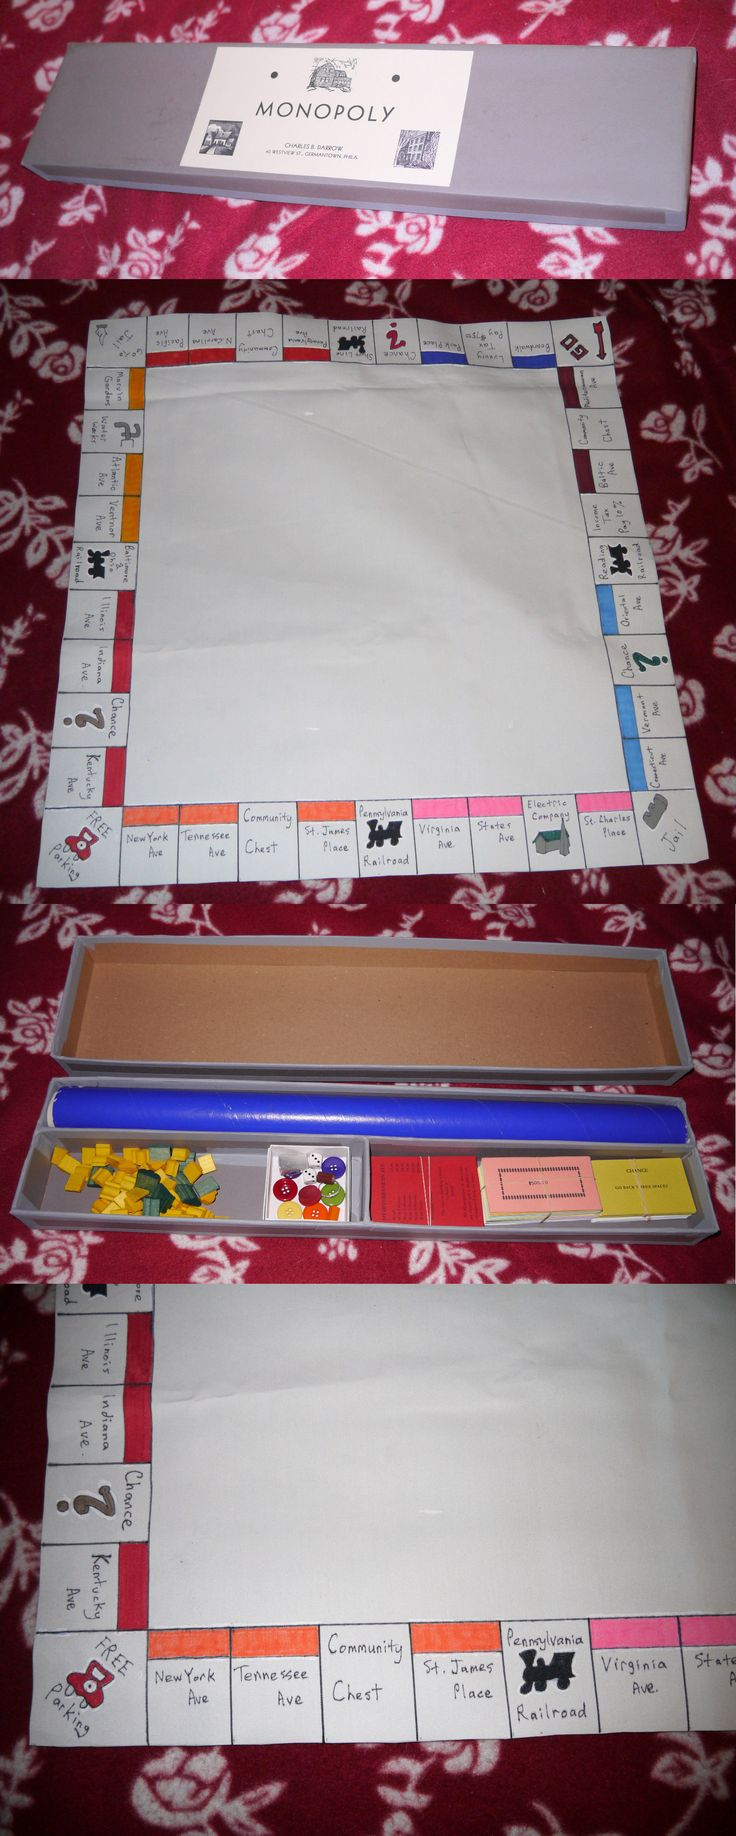 Vintage manufacture 19100 darrow tie box oilcloth 1933 style reproduction monopoly game set